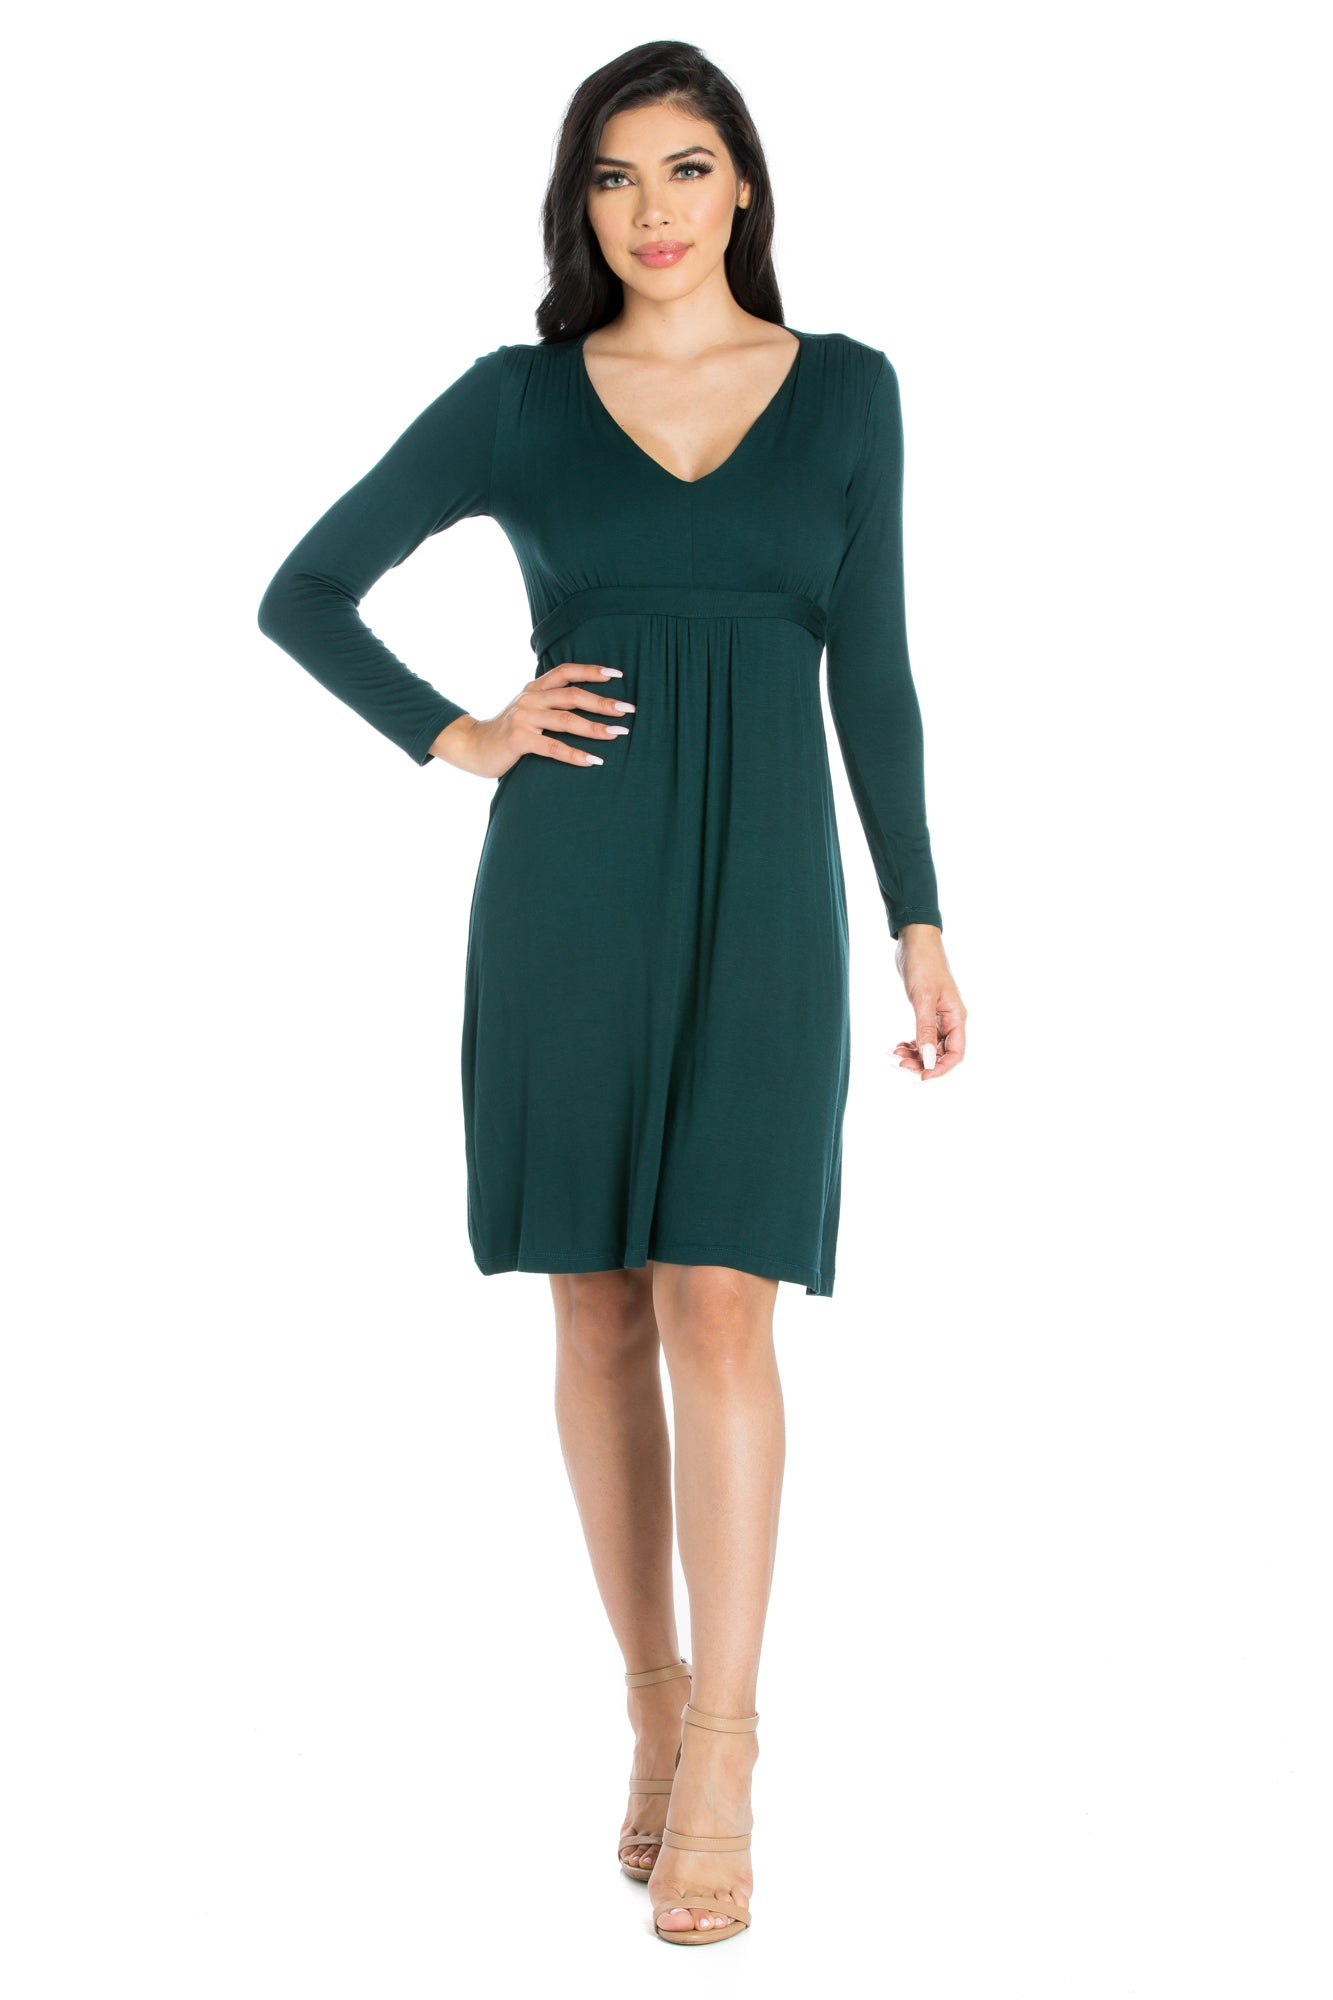 24seven Comfort Apparel Long Sleeve V-Neck Cocktail Dress-Dresses-24Seven Comfort Apparel-HUNTER-S-24/7 Comfort Apparel